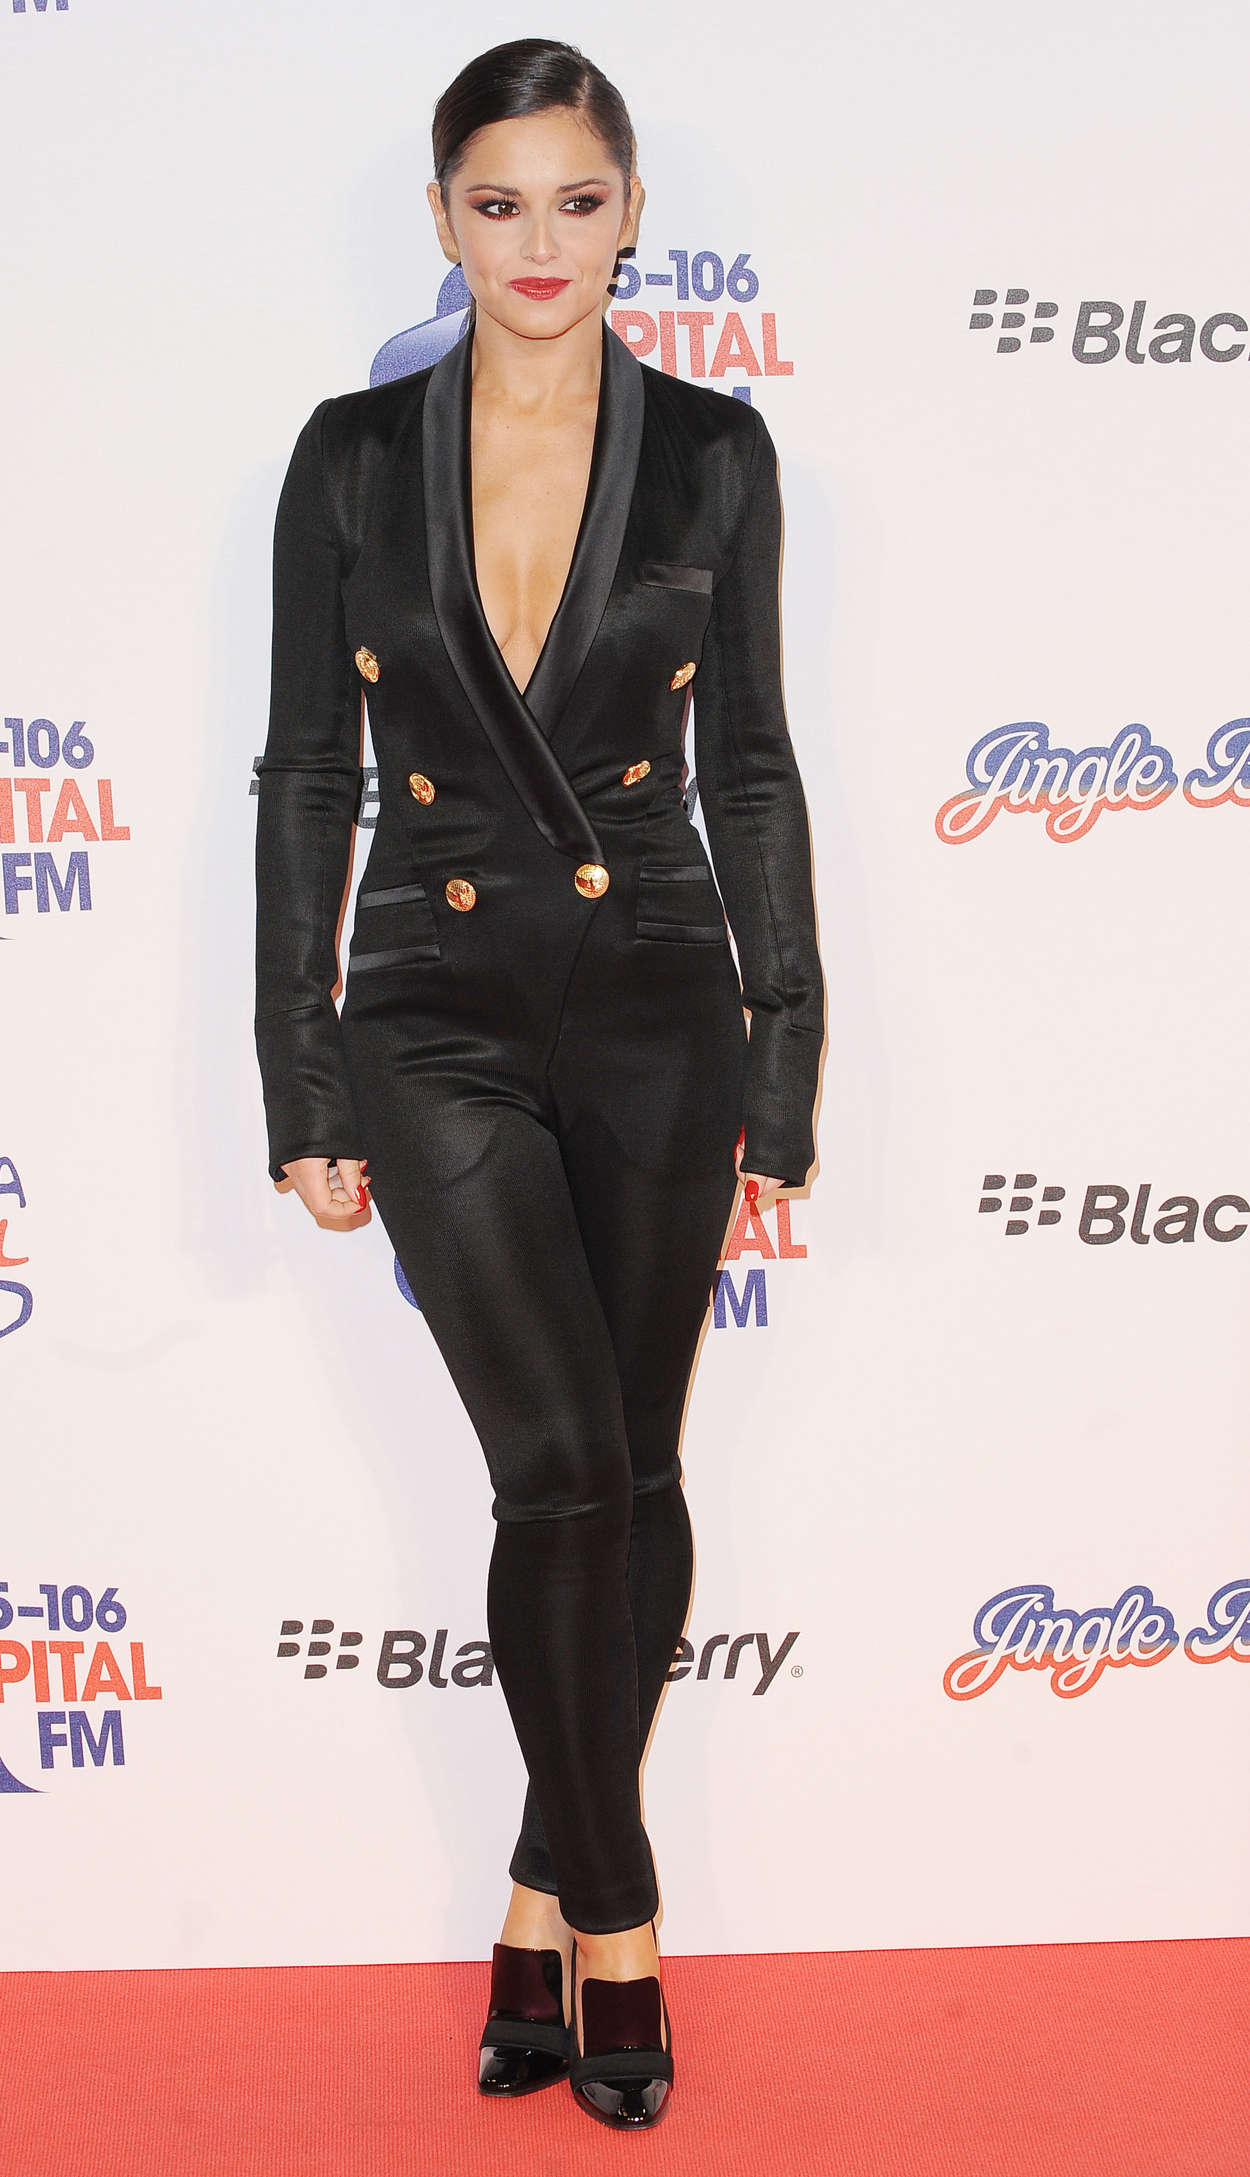 Back to FULL gallery Cheryl Cole – Jingle Bell Ball 2012 in London Miley Cyrus